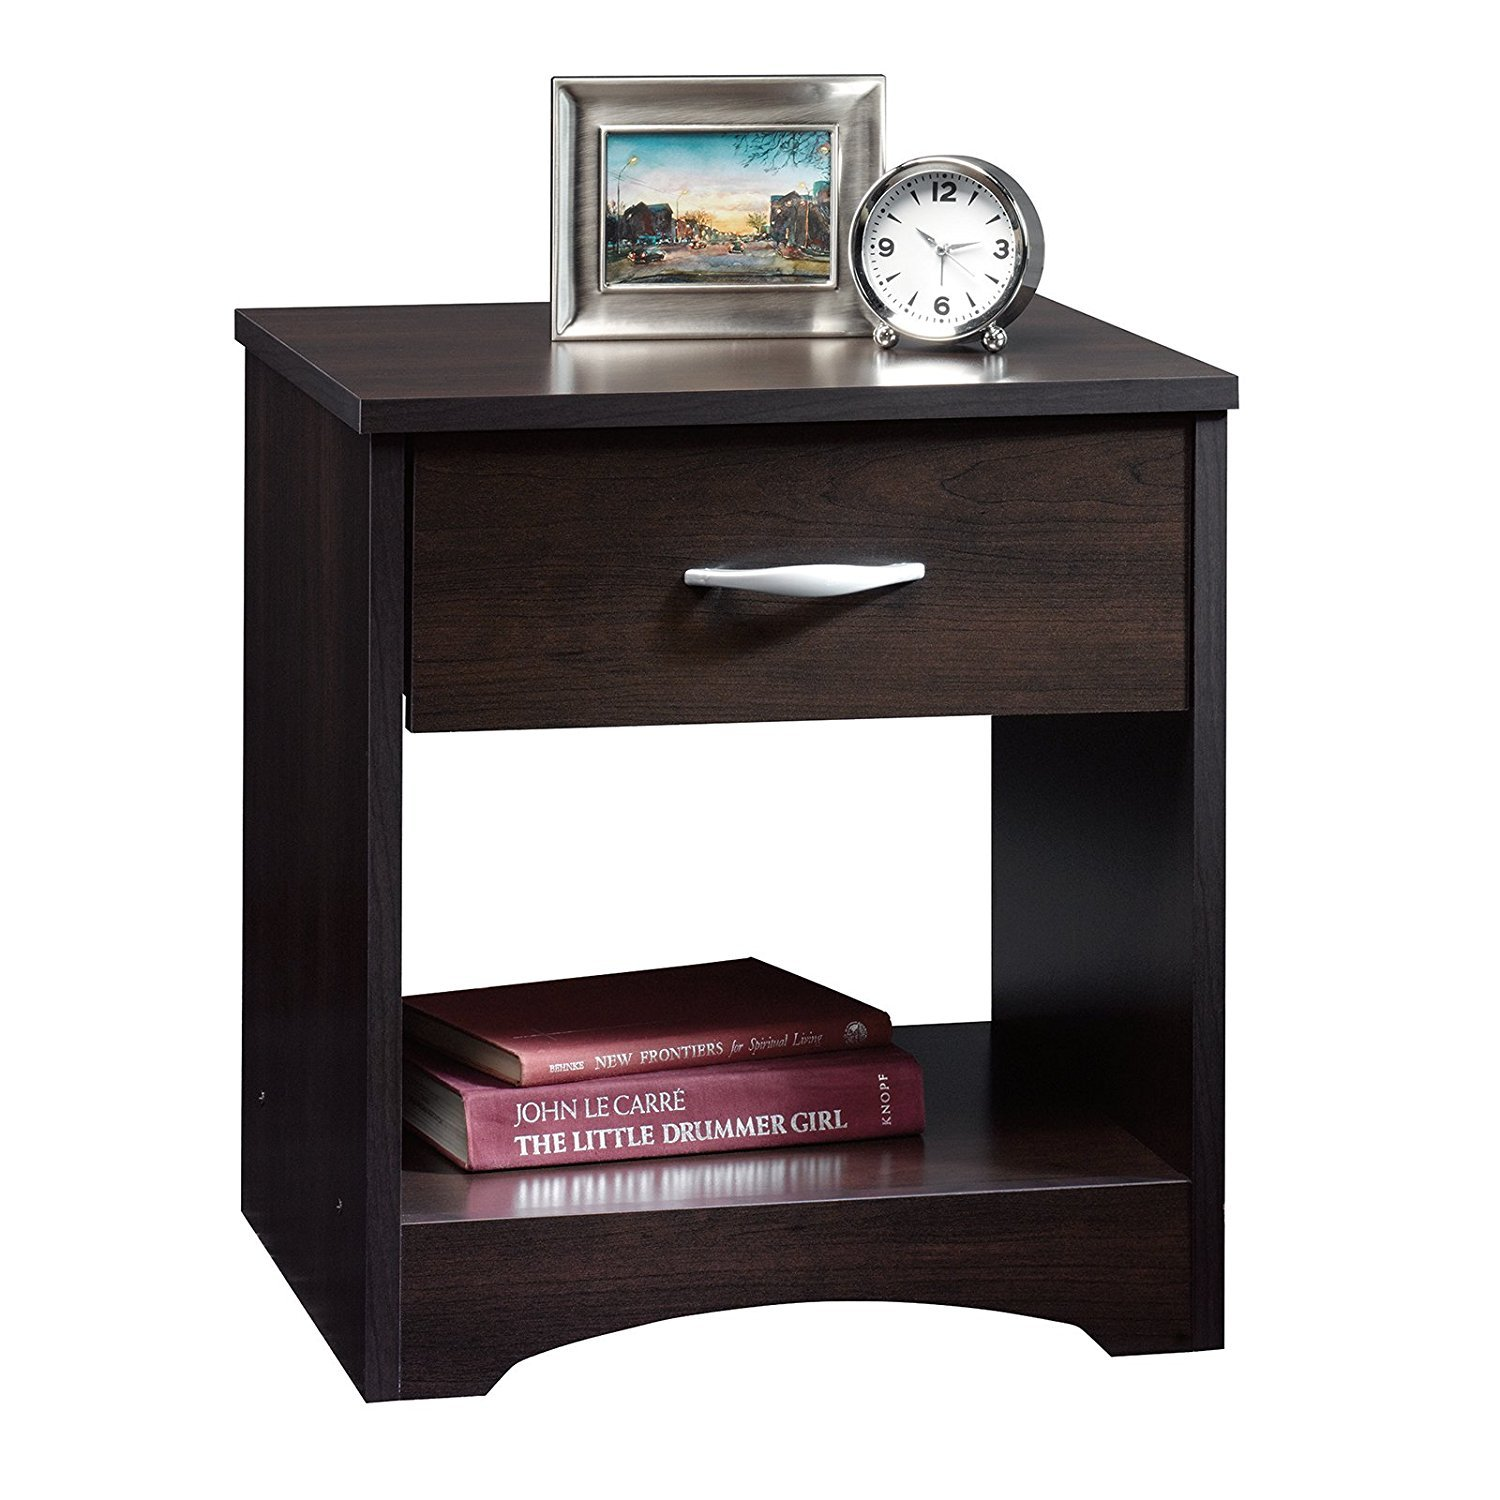 Bedside Tables: Buy Bedside Tables online at best prices in India ...